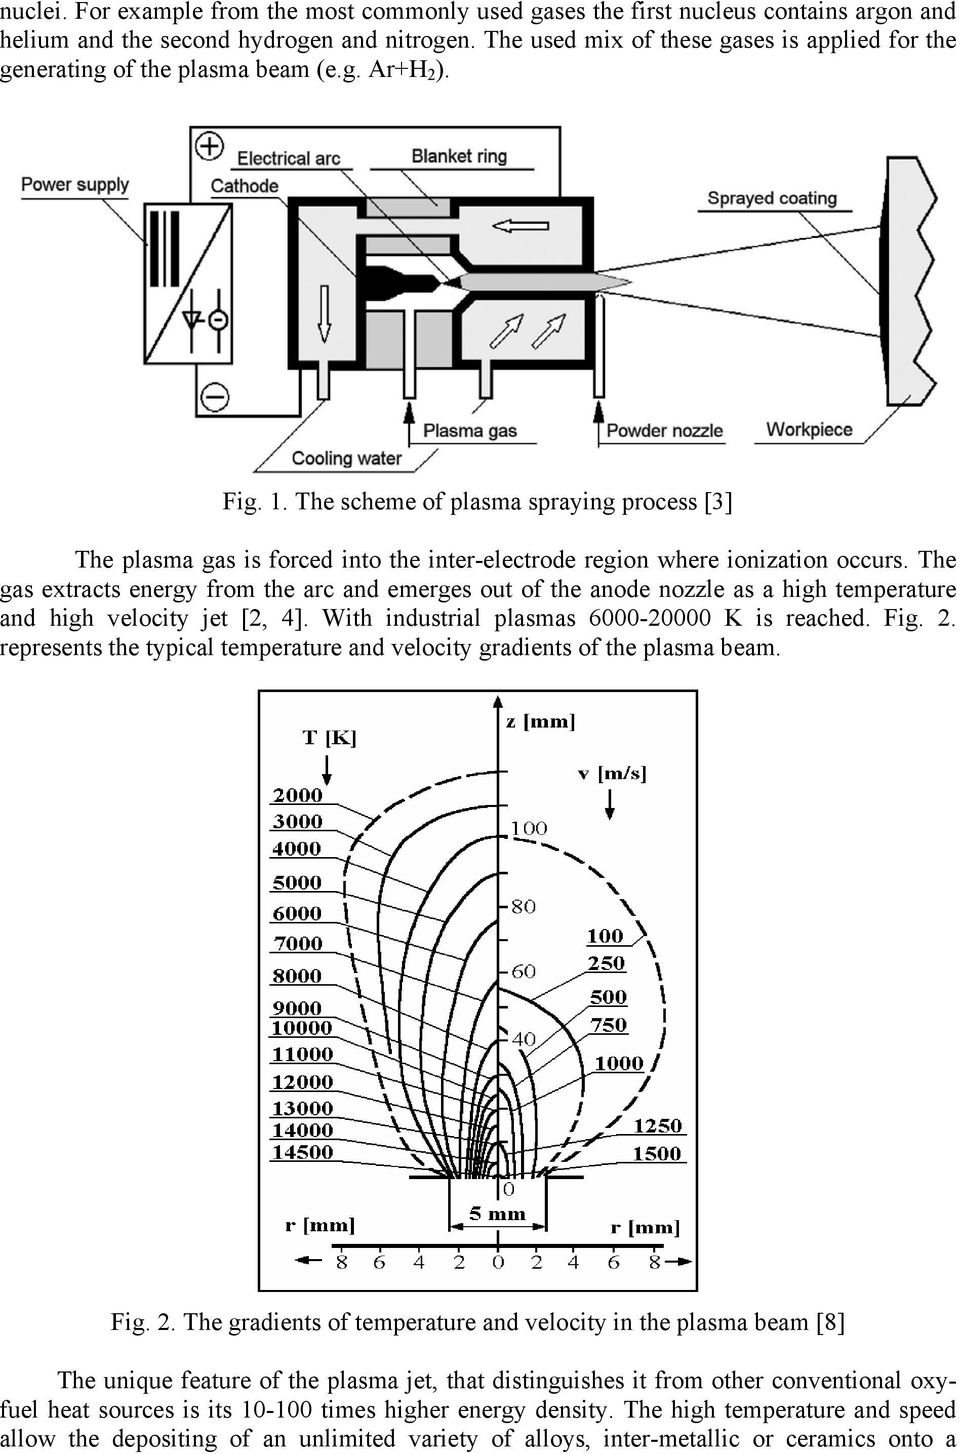 The scheme of plasma spraying process [3] The plasma gas is forced into the inter-electrode region where ionization occurs.